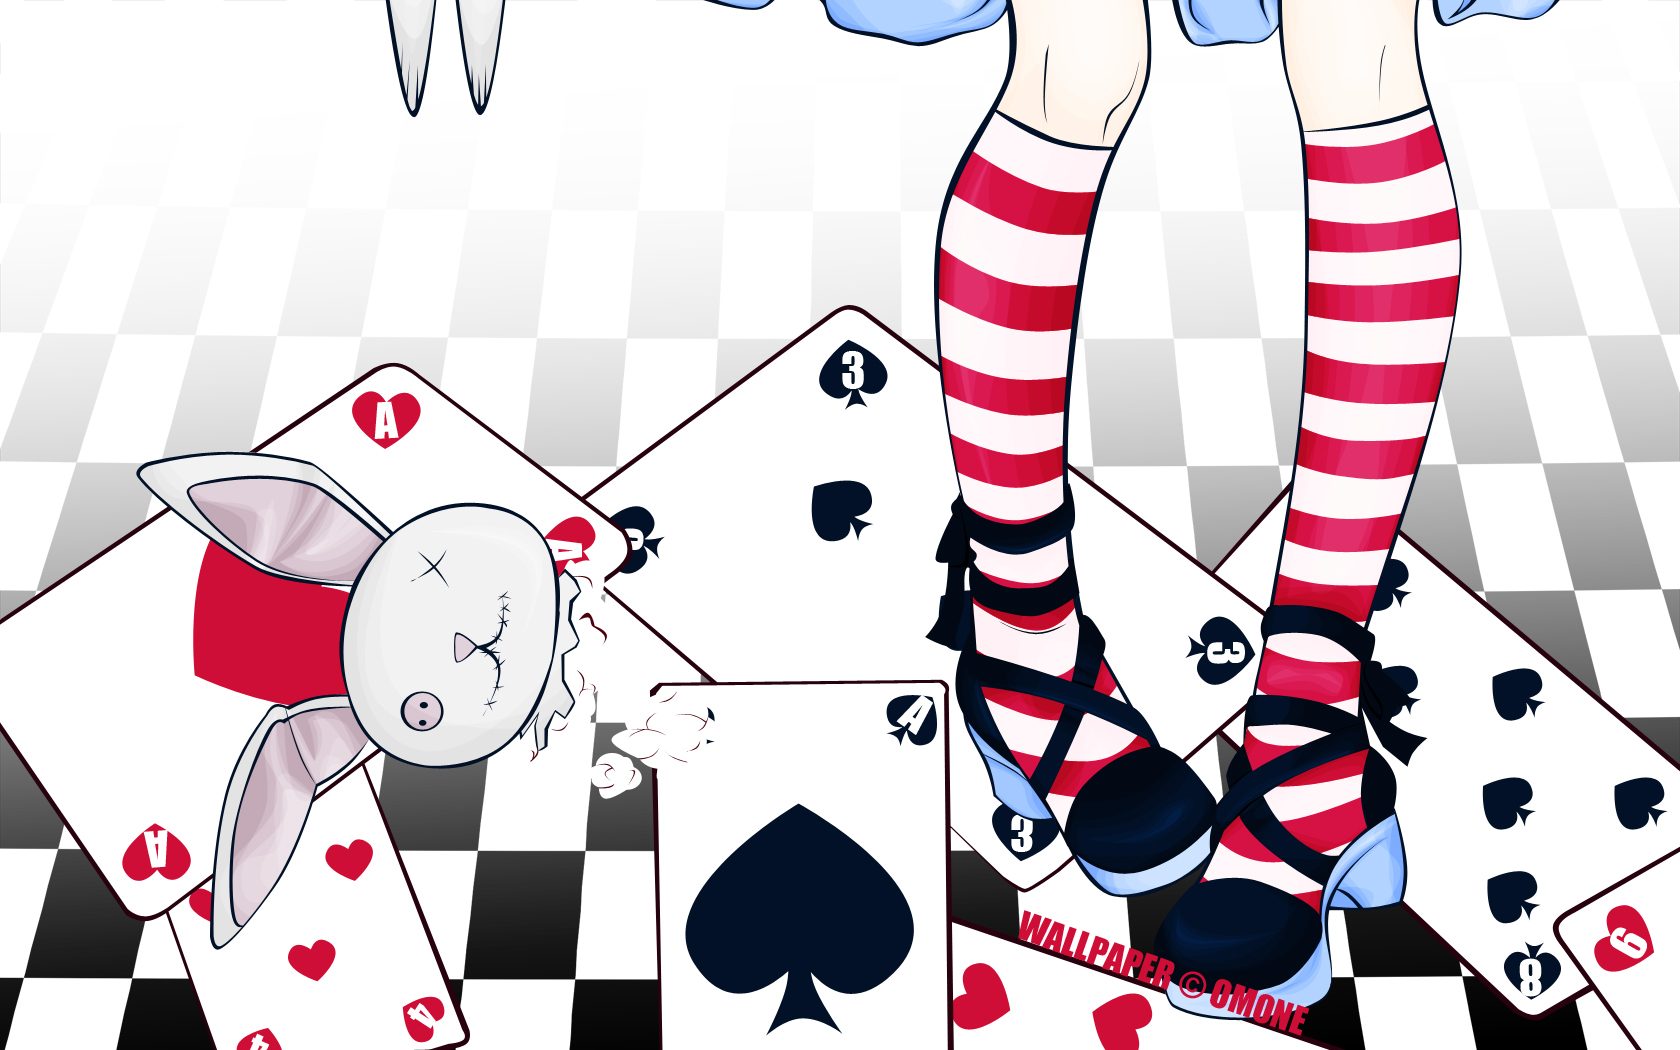 alice in wonderland, wallpaper | page 2 - zerochan anime image board